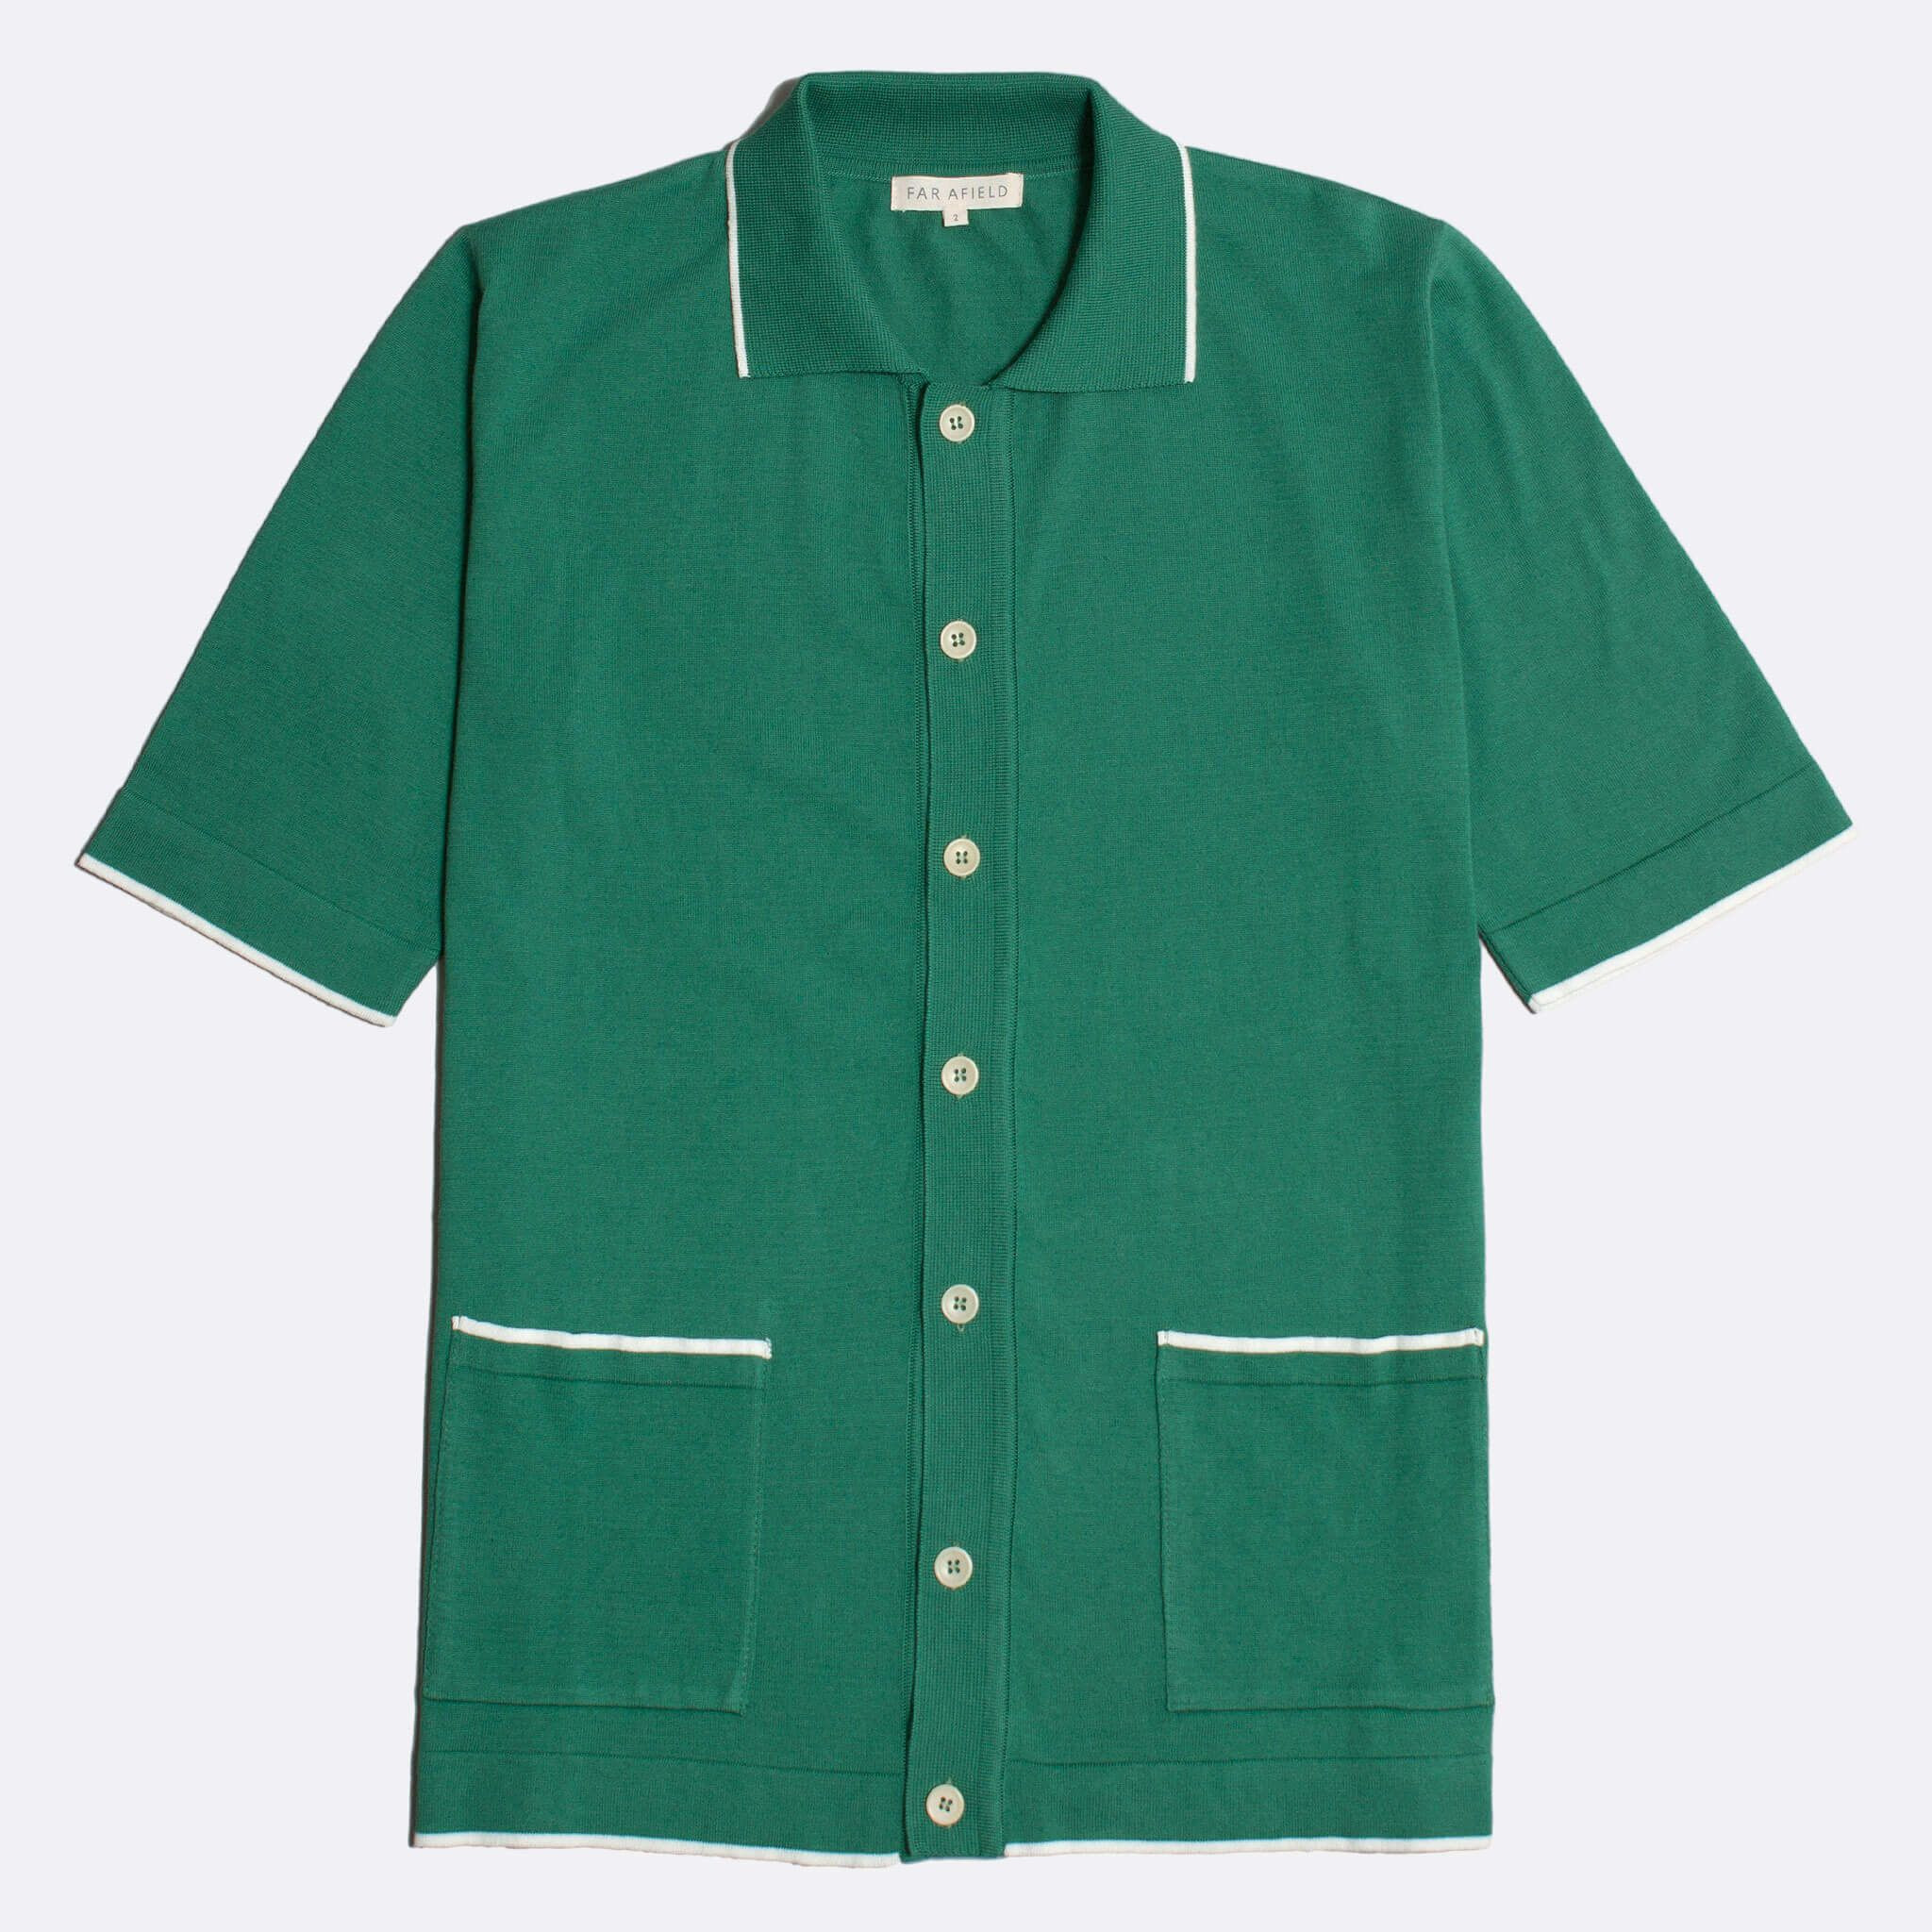 Far Afield Errol Short Sleeve Polo a Bottle Green BCI Cotton Fabric Italian Mod Knitwear Smart Casual